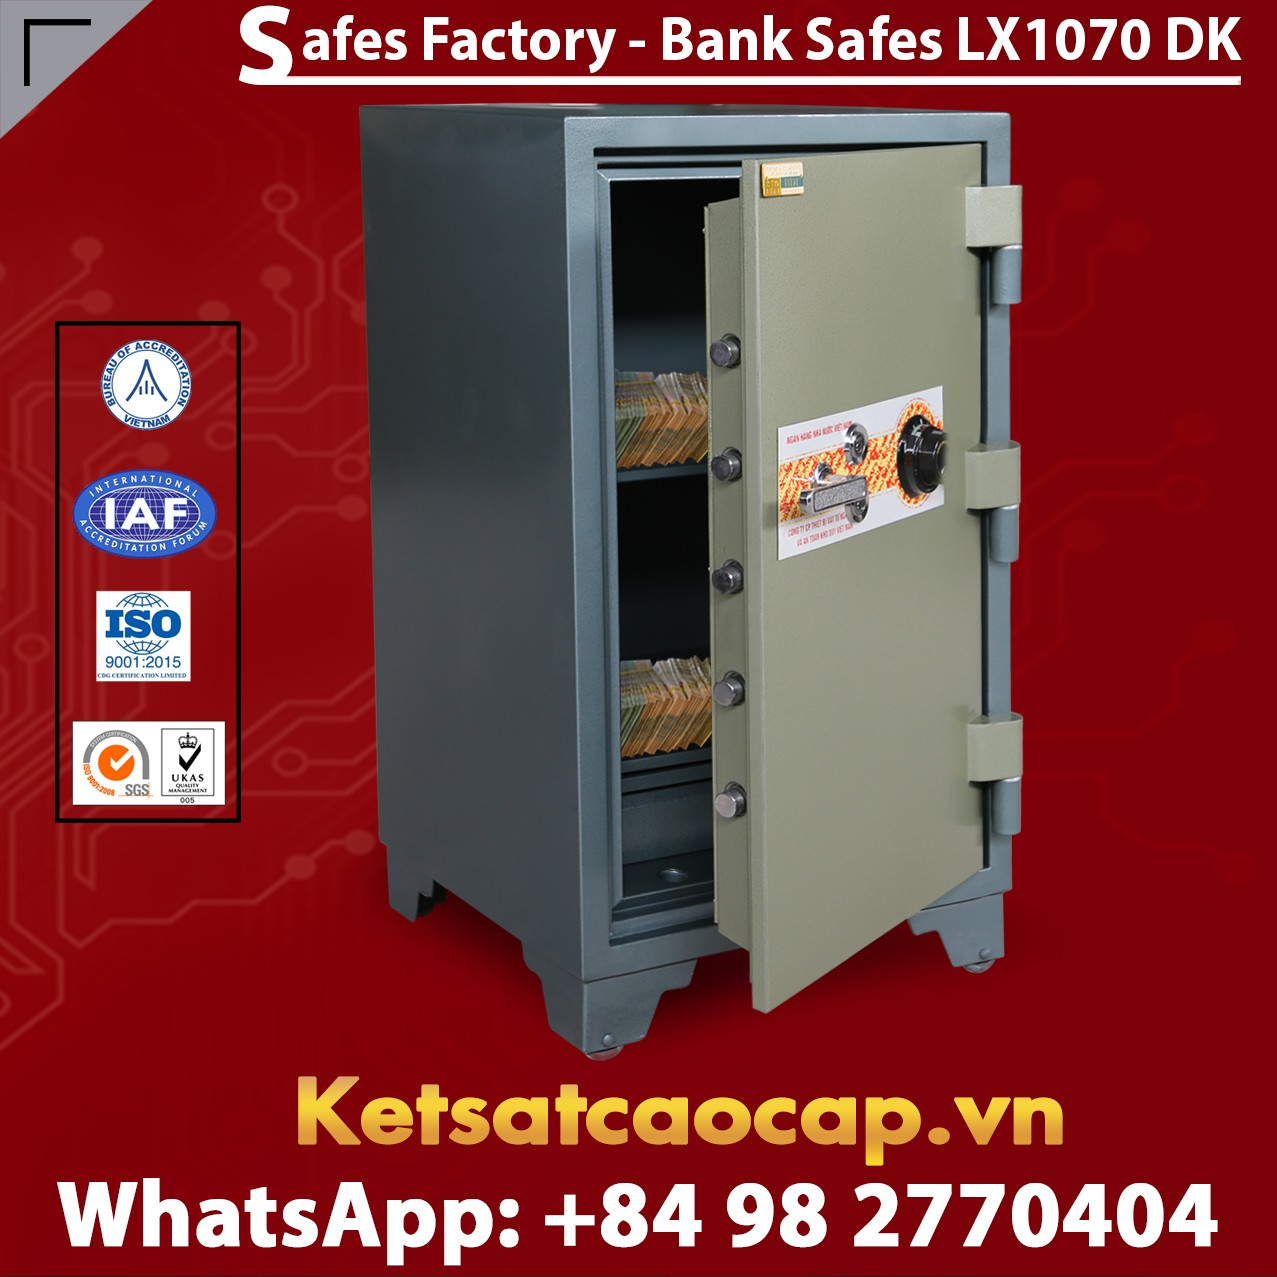 Bank Safes Manufacturing Facility